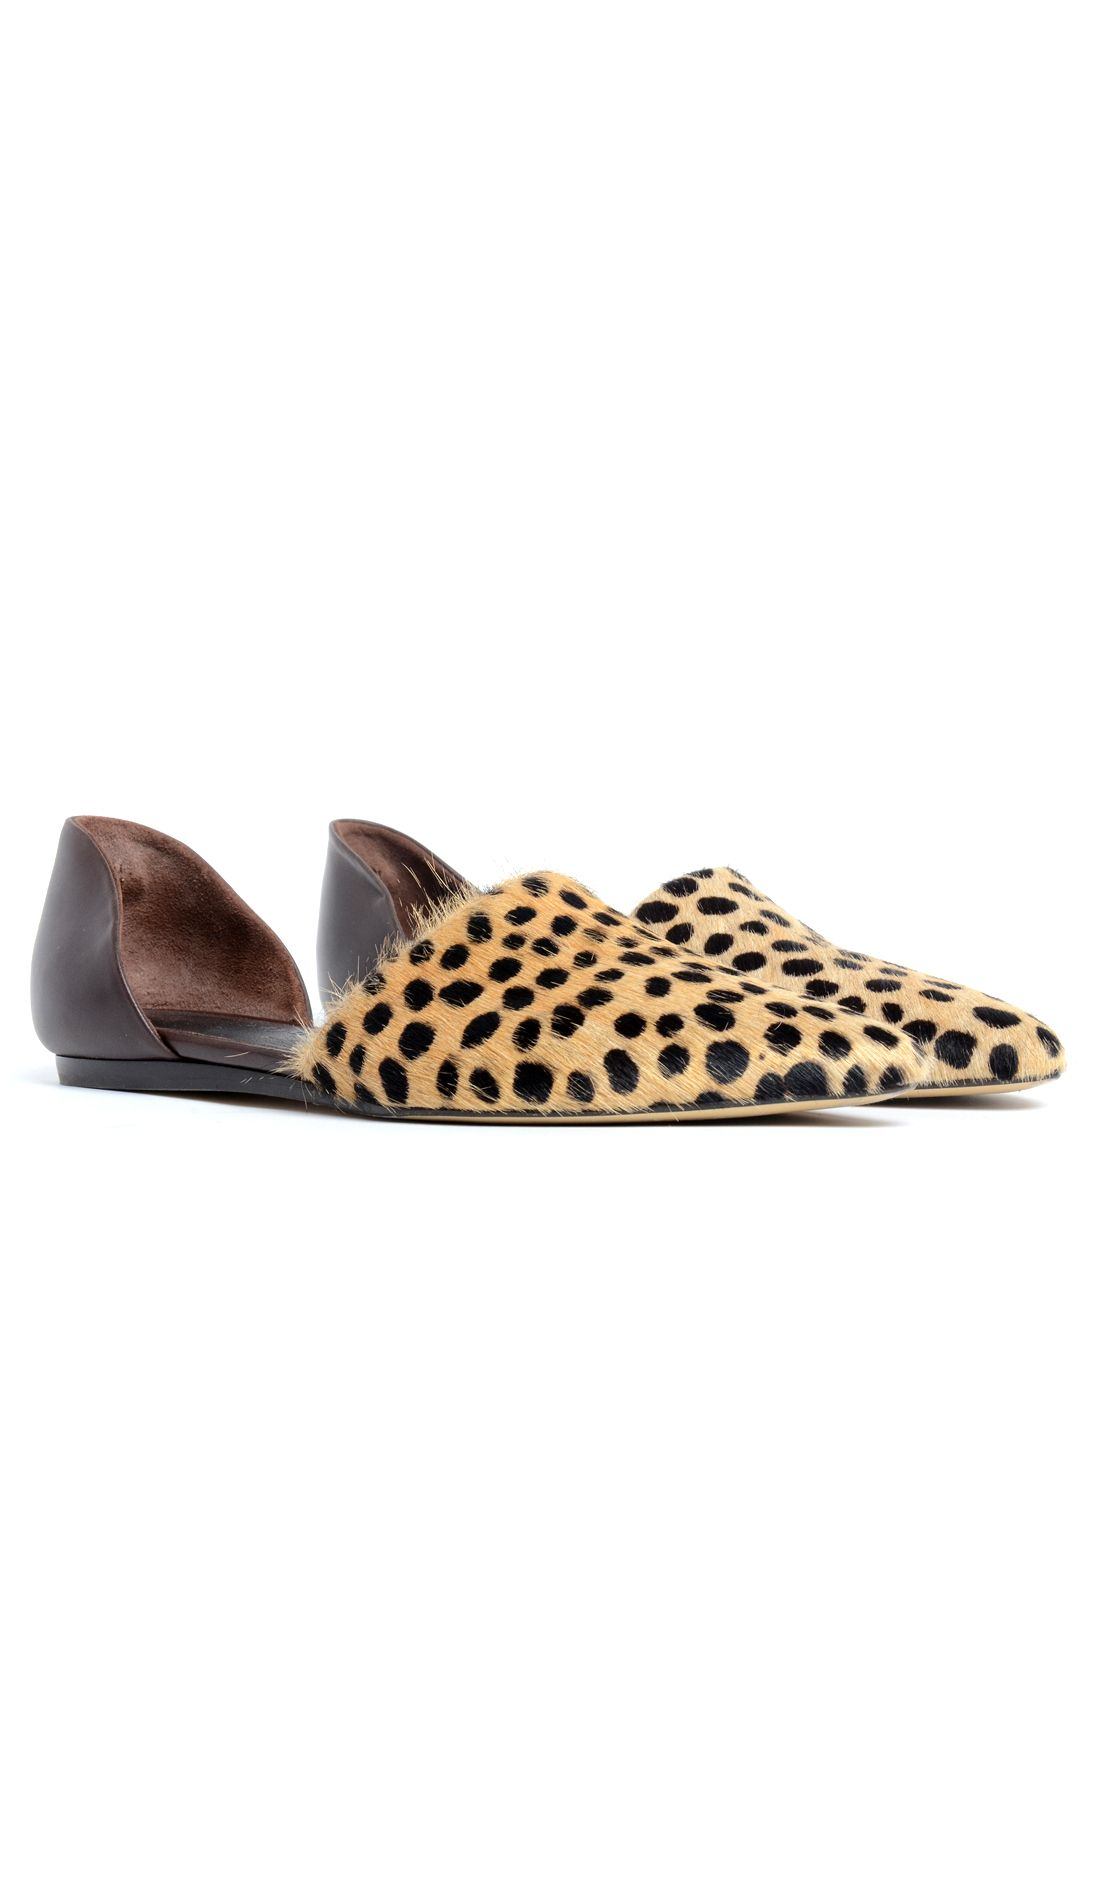 151a54ff7fb8 Cheetah printed pony hair pointed toe flat with brown leather. Heel 1/2